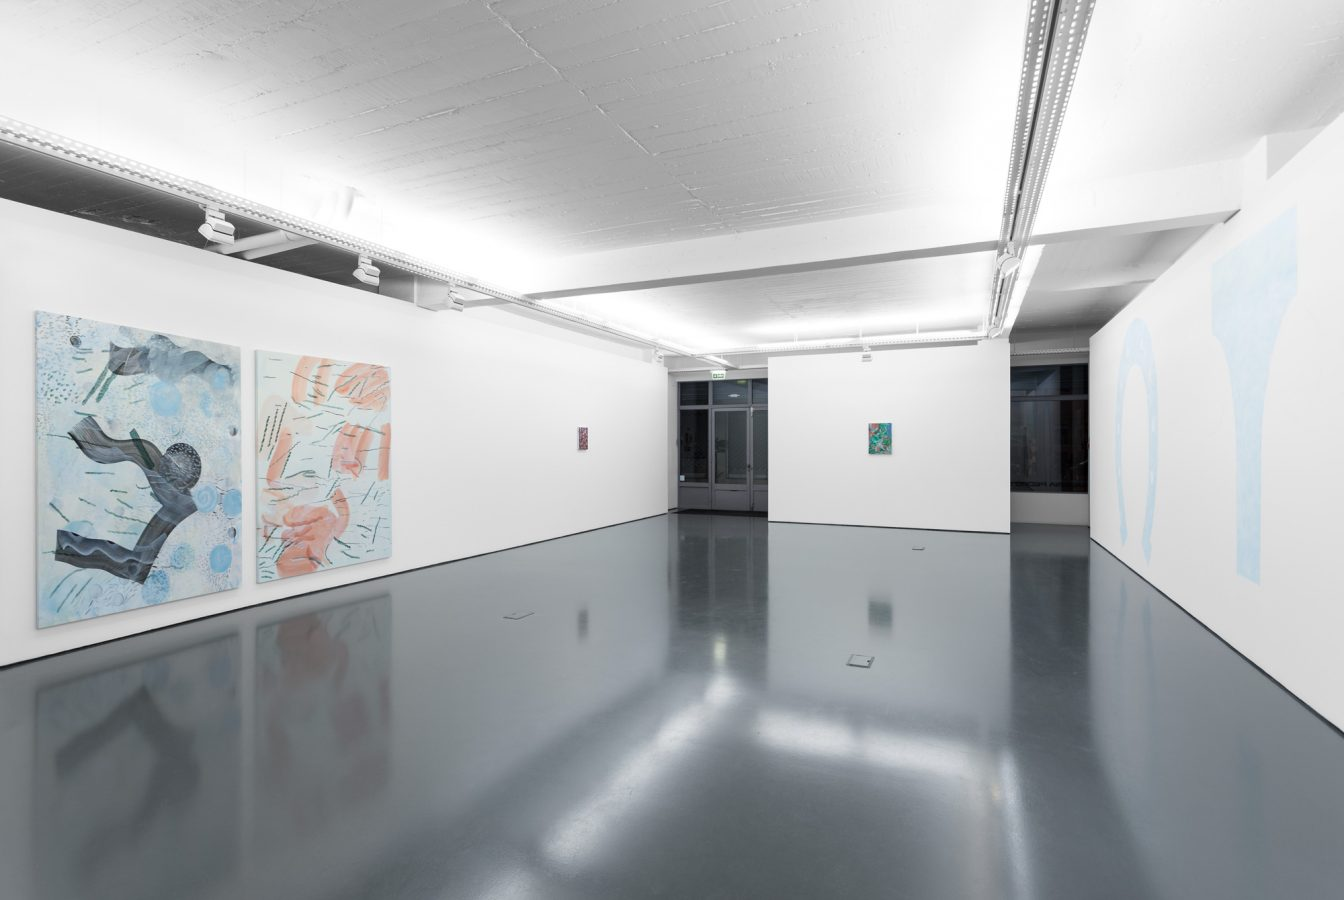 Galeria Pedro Cera – Ana Manso - In Order of Appearance